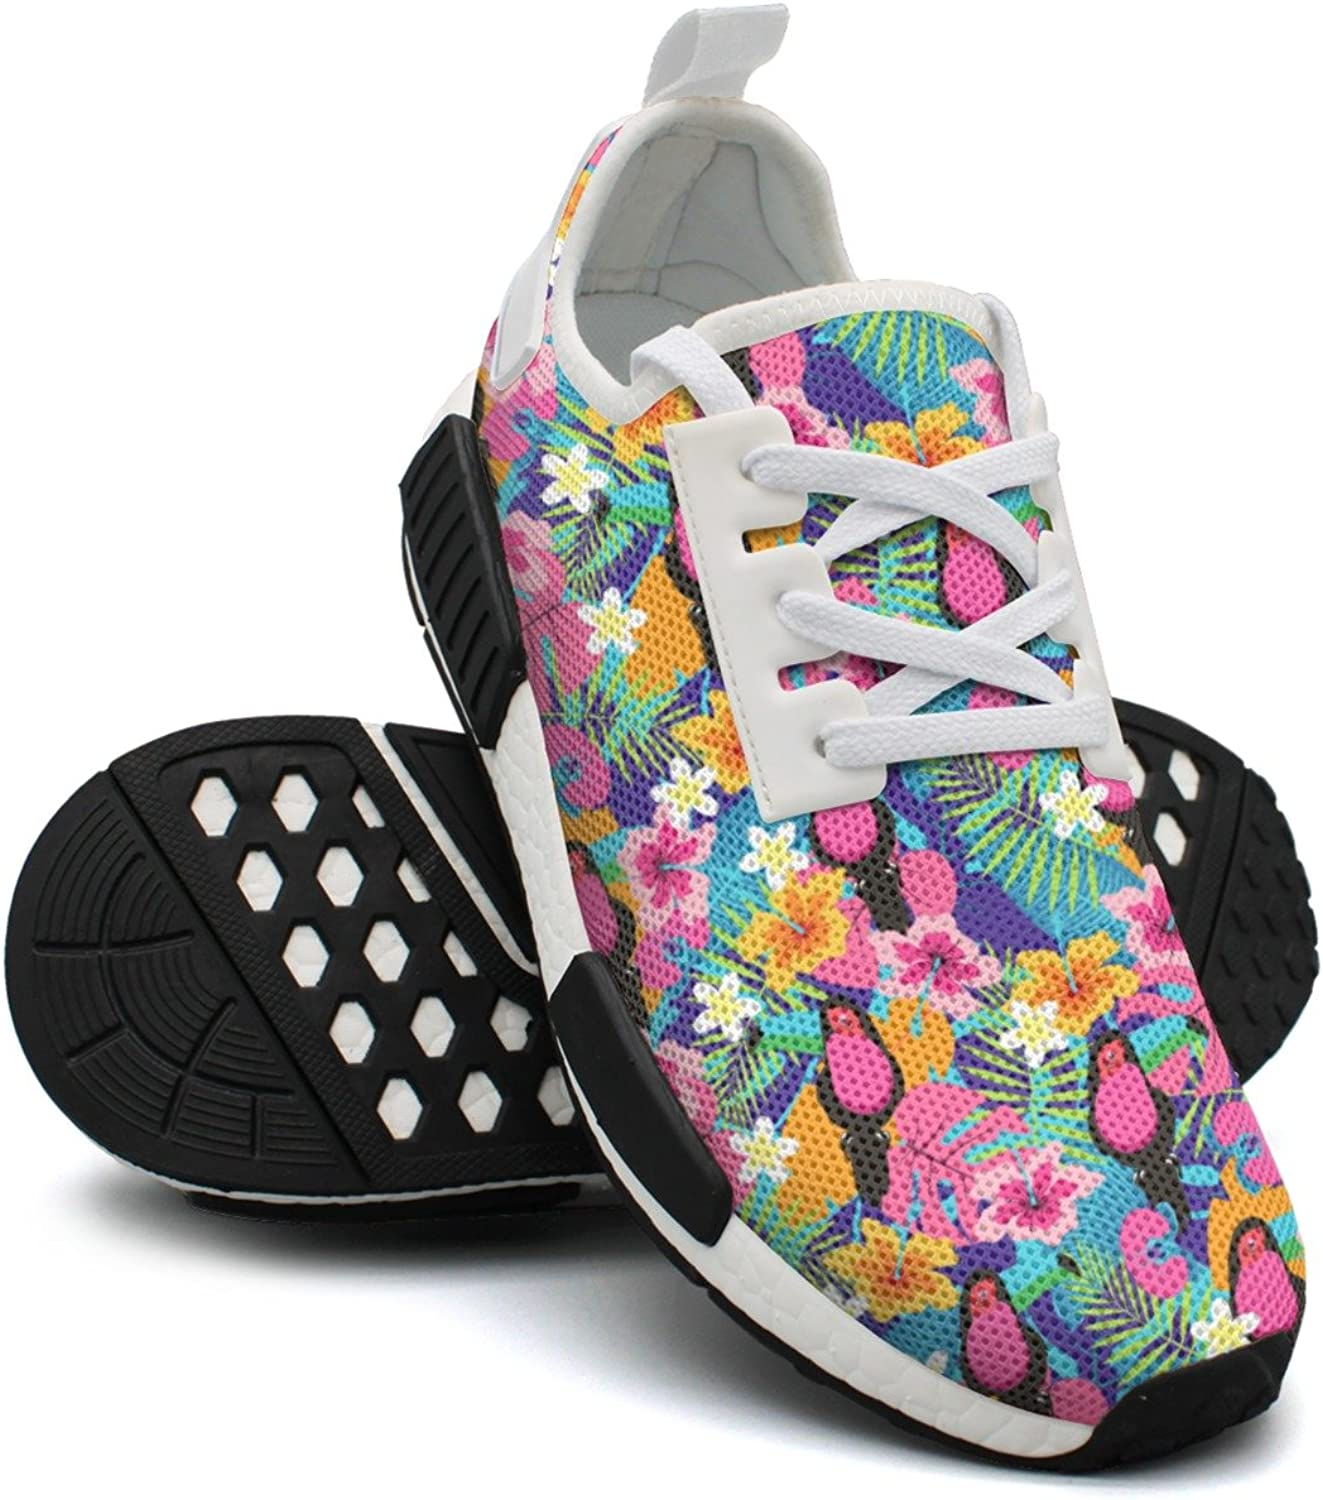 Ktyyuwwww Pretty Women colorful Printing What Do Toucans Eat Unique Design Running shoes